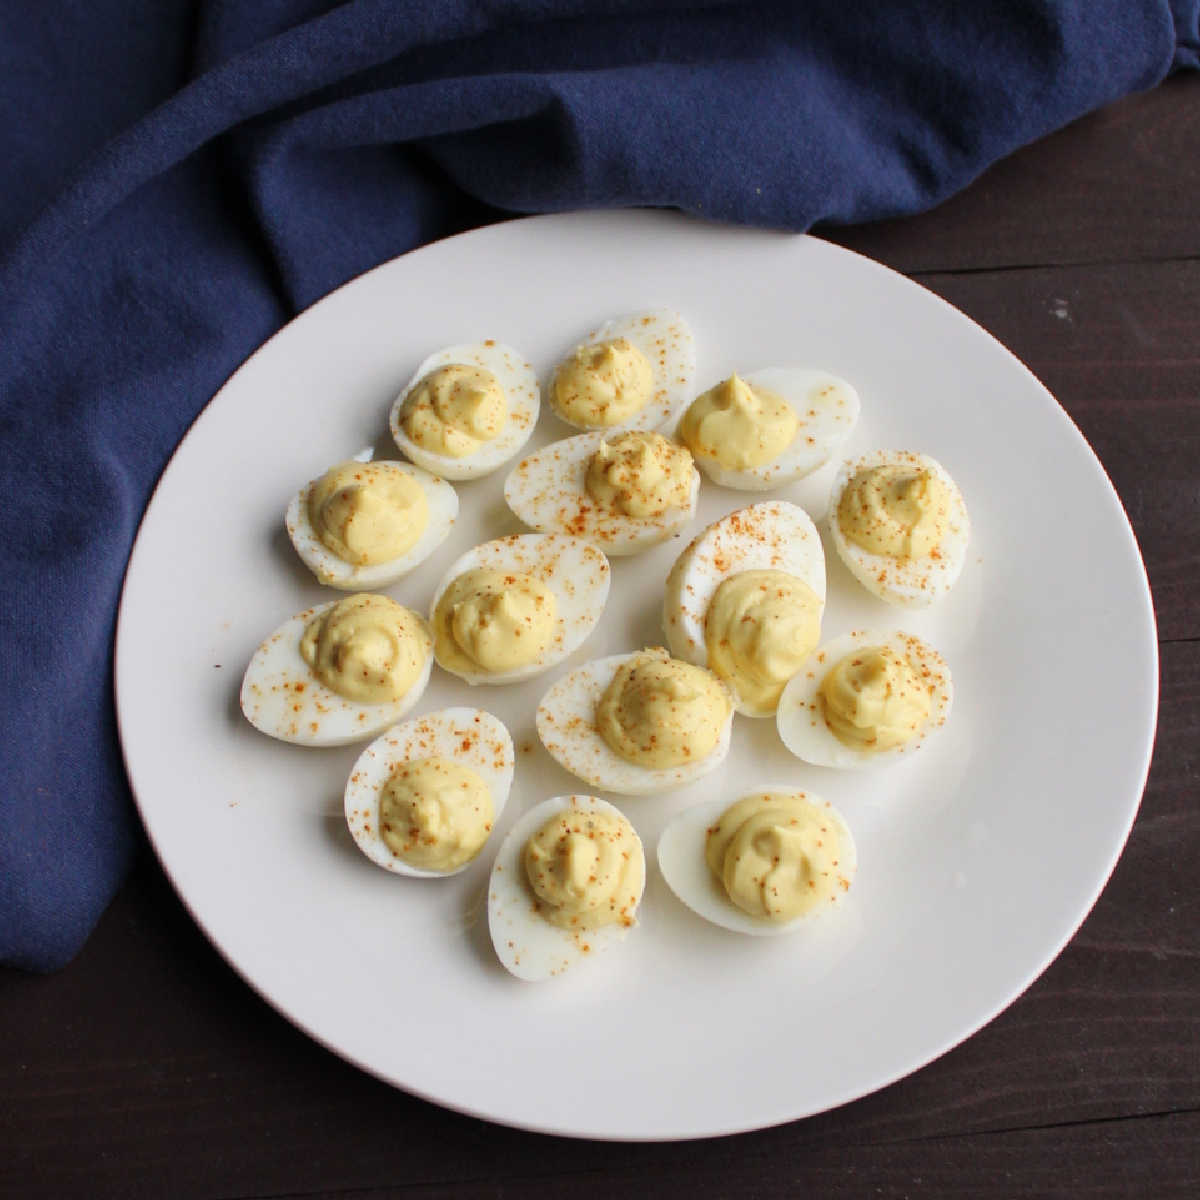 Plate filled with mini quail deviled eggs.